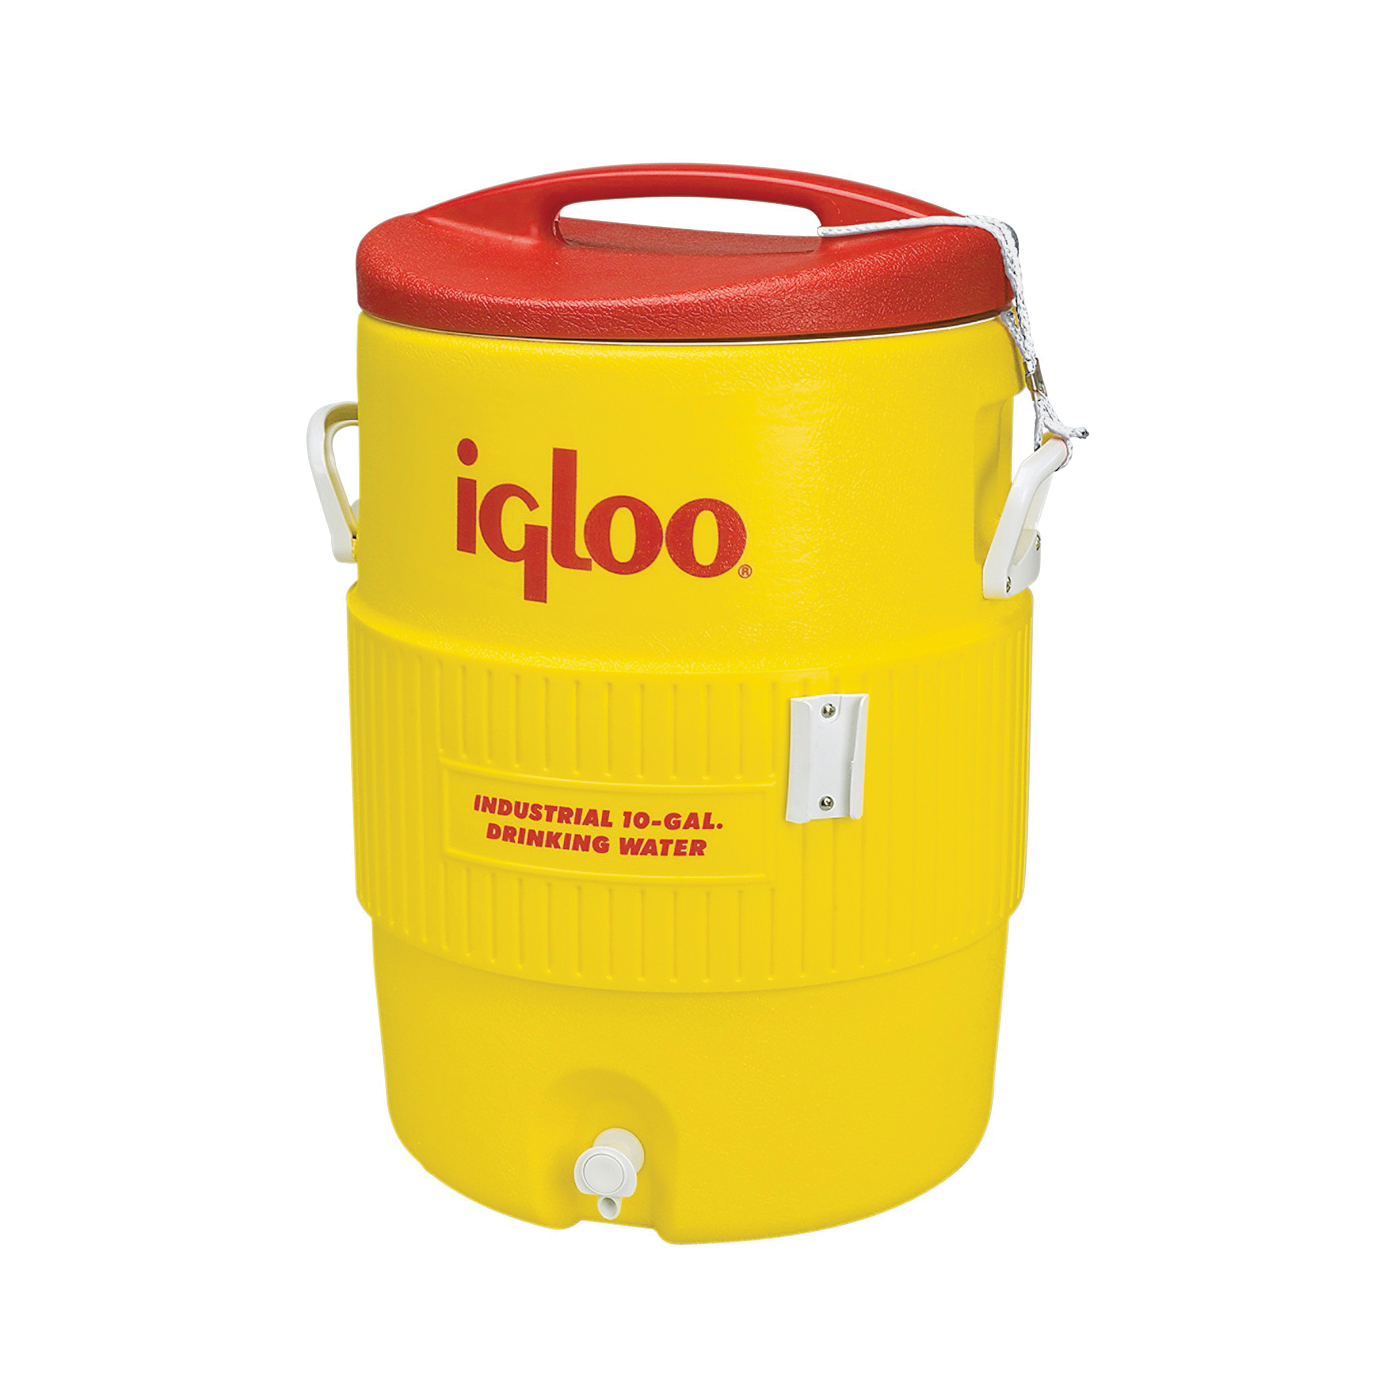 Picture of IGLOO 400 Series 00004101 Water Cooler, 10 gal Tank, Polyethylene, Red/Yellow